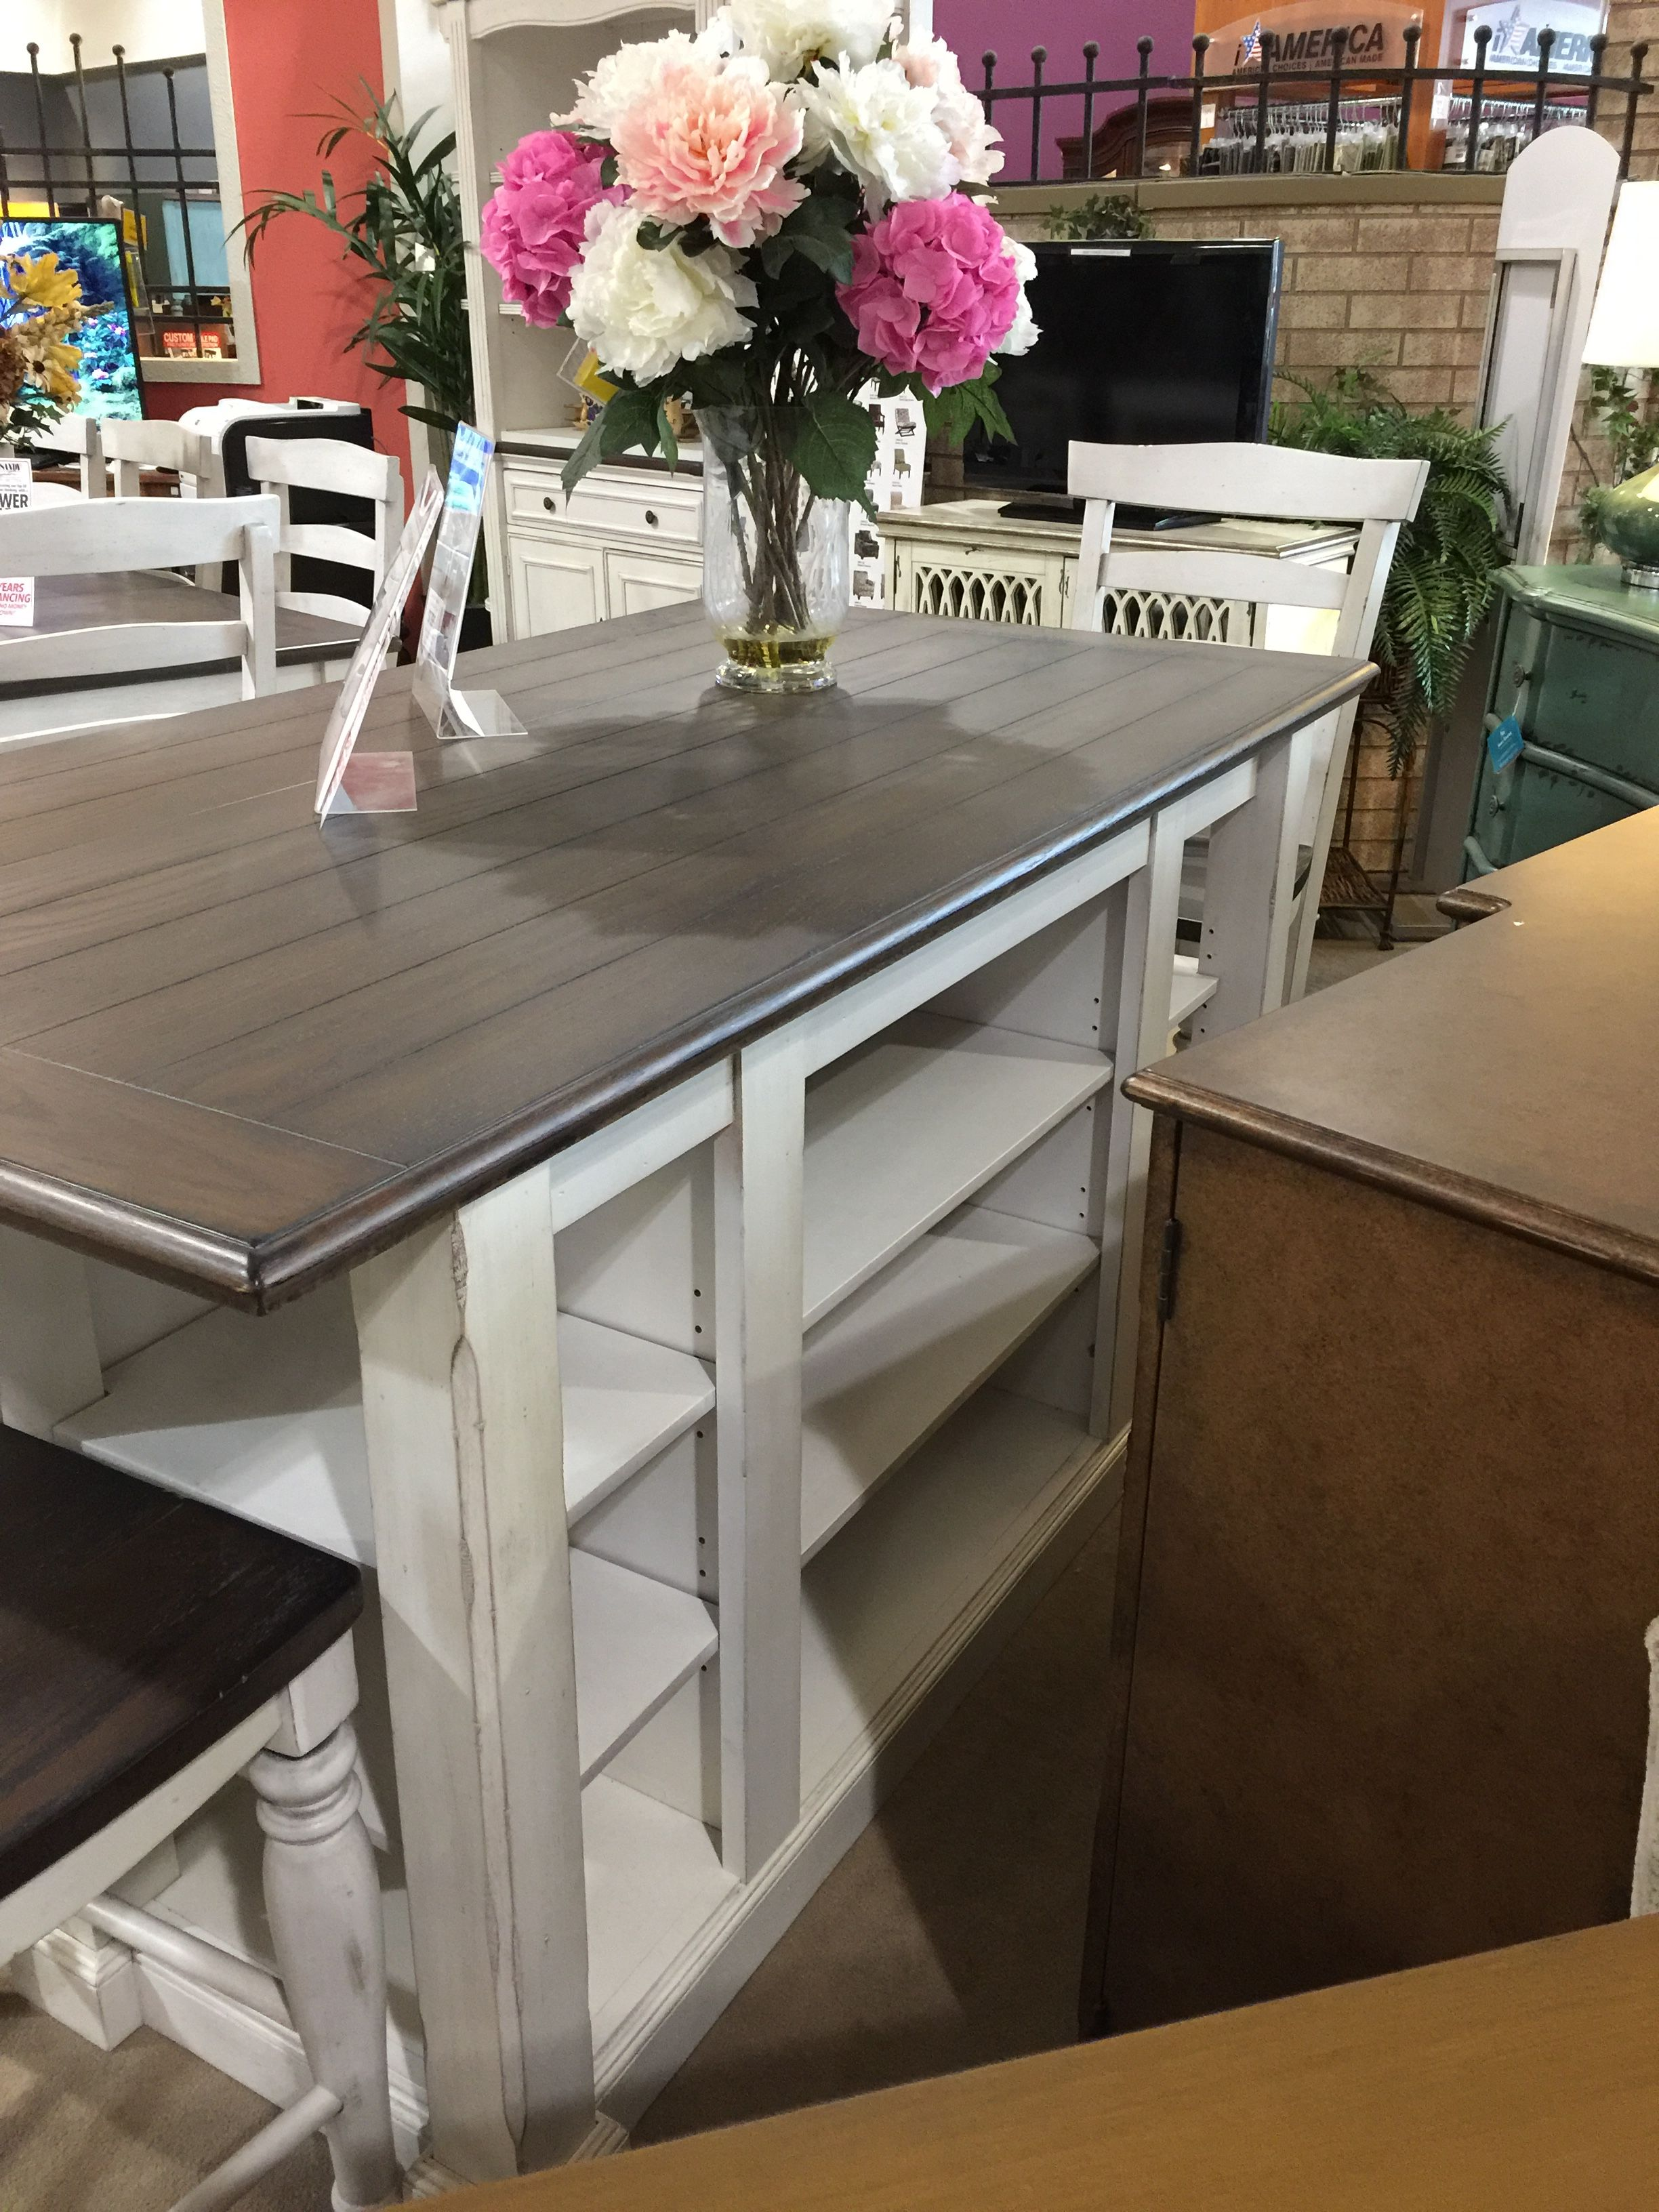 Big sandy furniture  Big sandy furniture, Furniture, Entryway tables